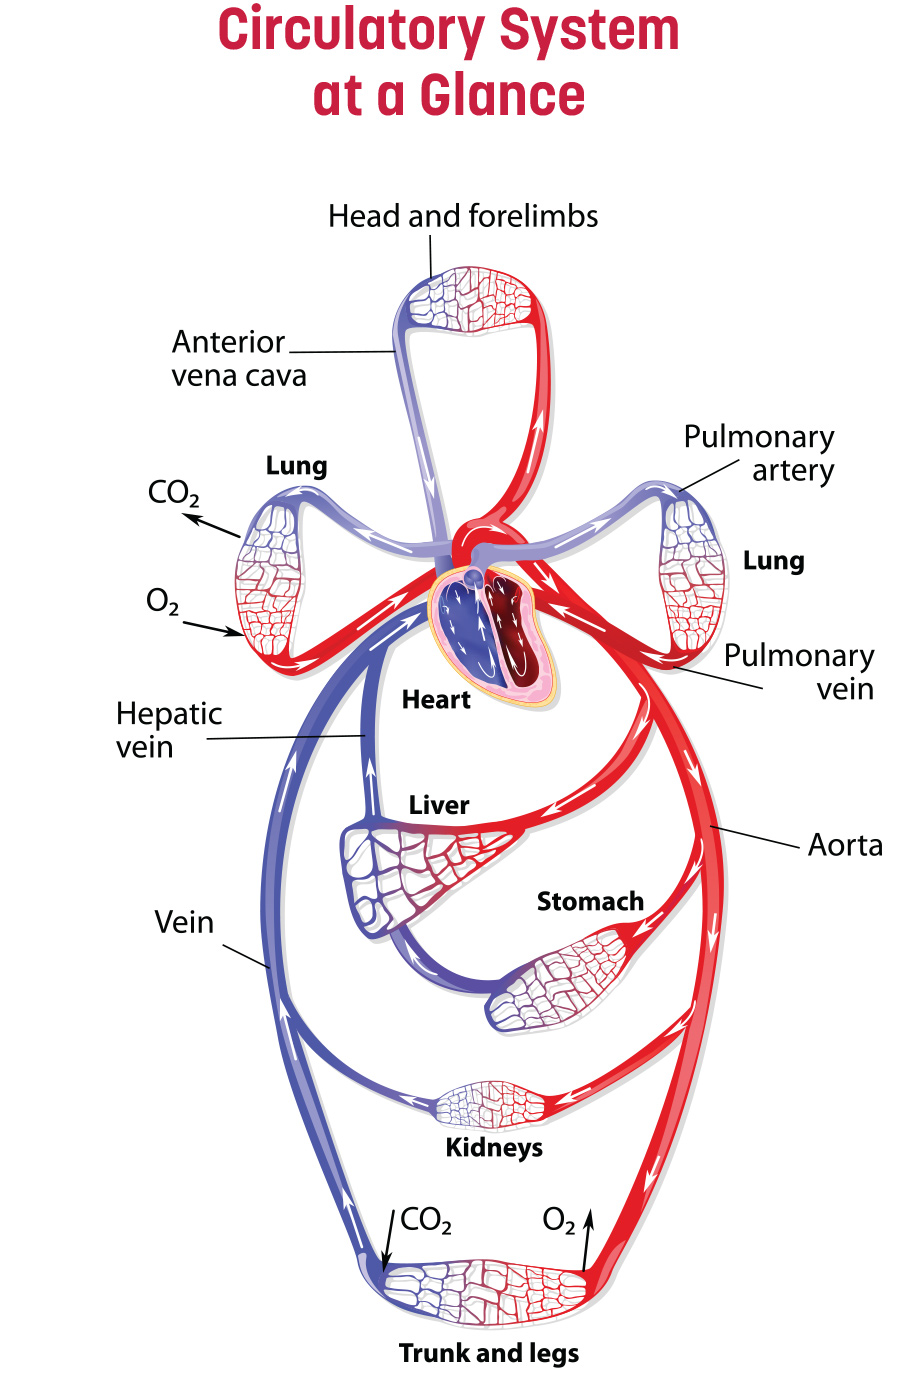 Circulatory System at a glance